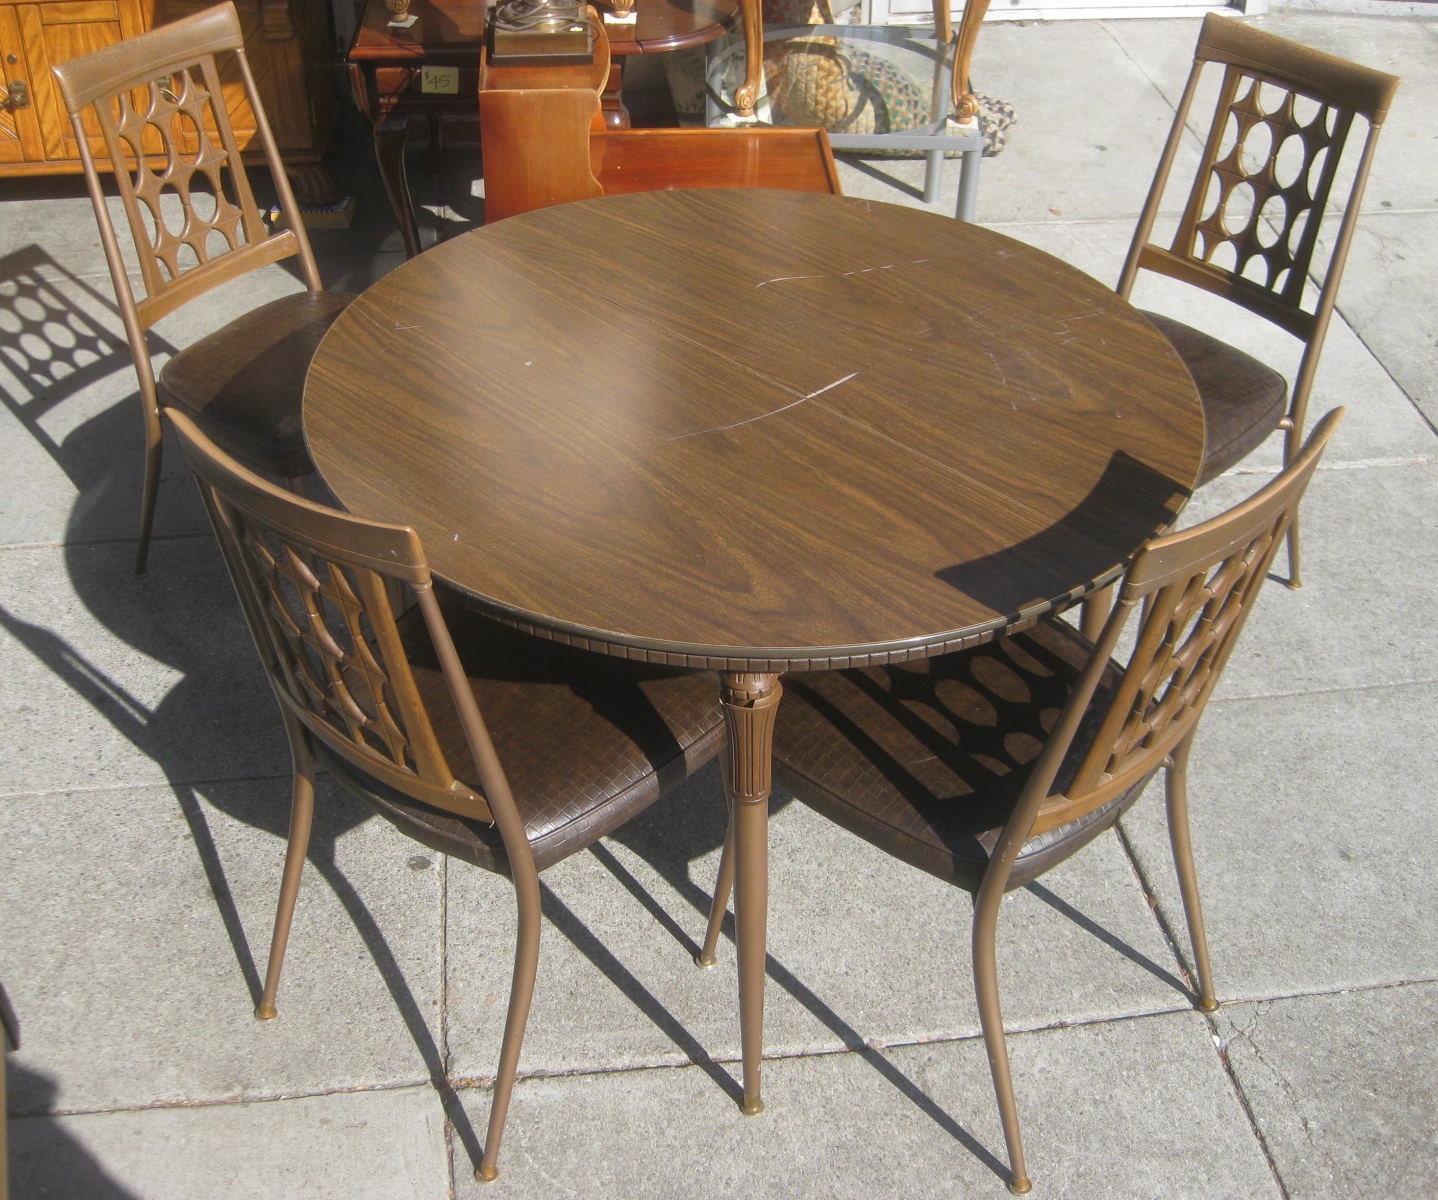 Uhuru Furniture Collectibles Sold Retro Kitchen Table And 4 Chairs 50